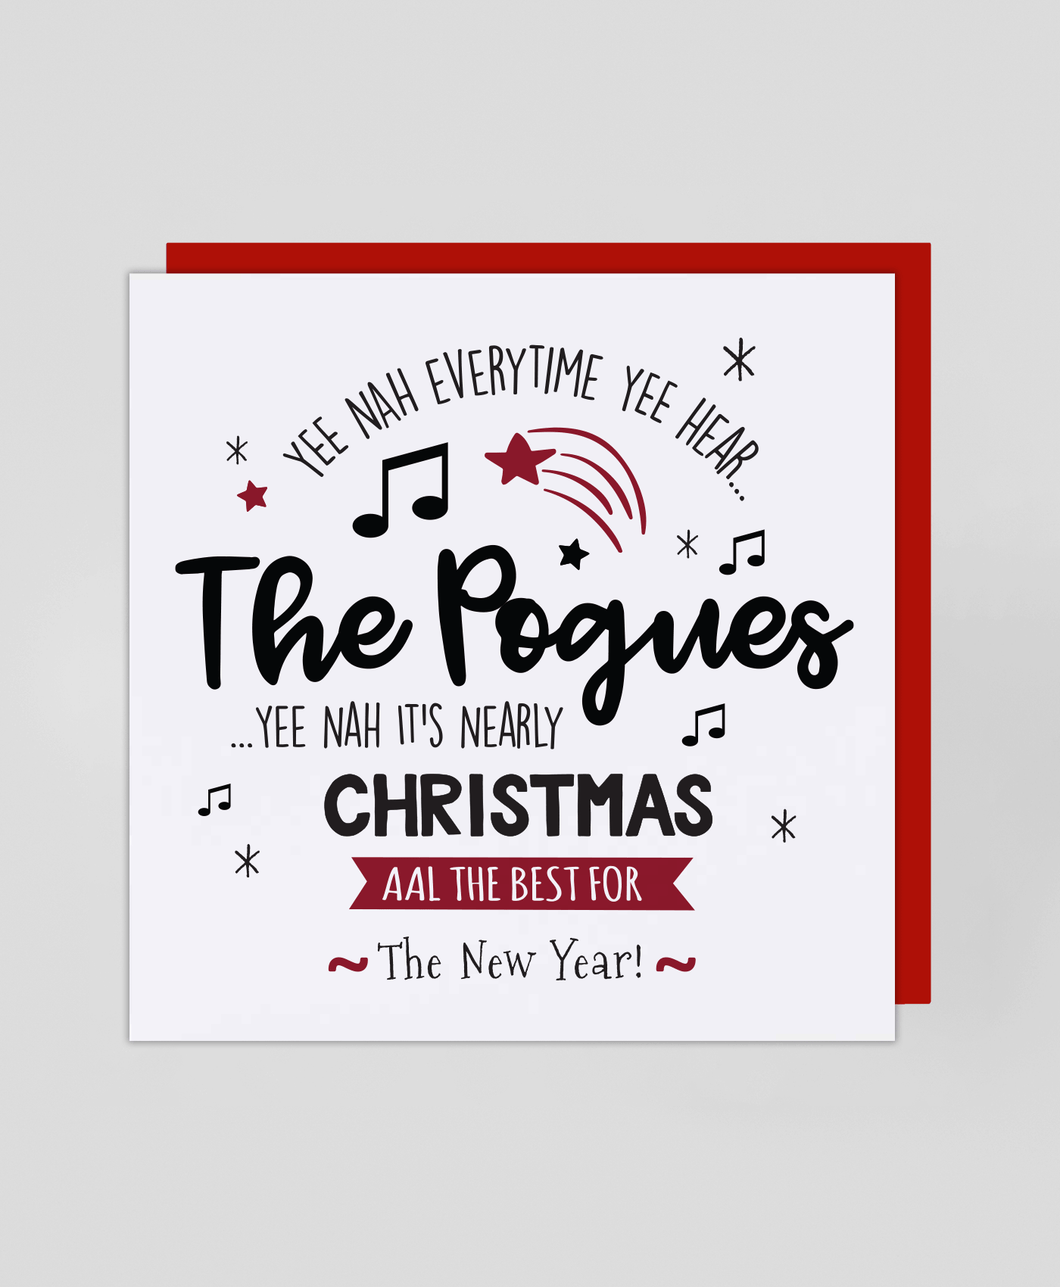 Pogues - Christmas Cards